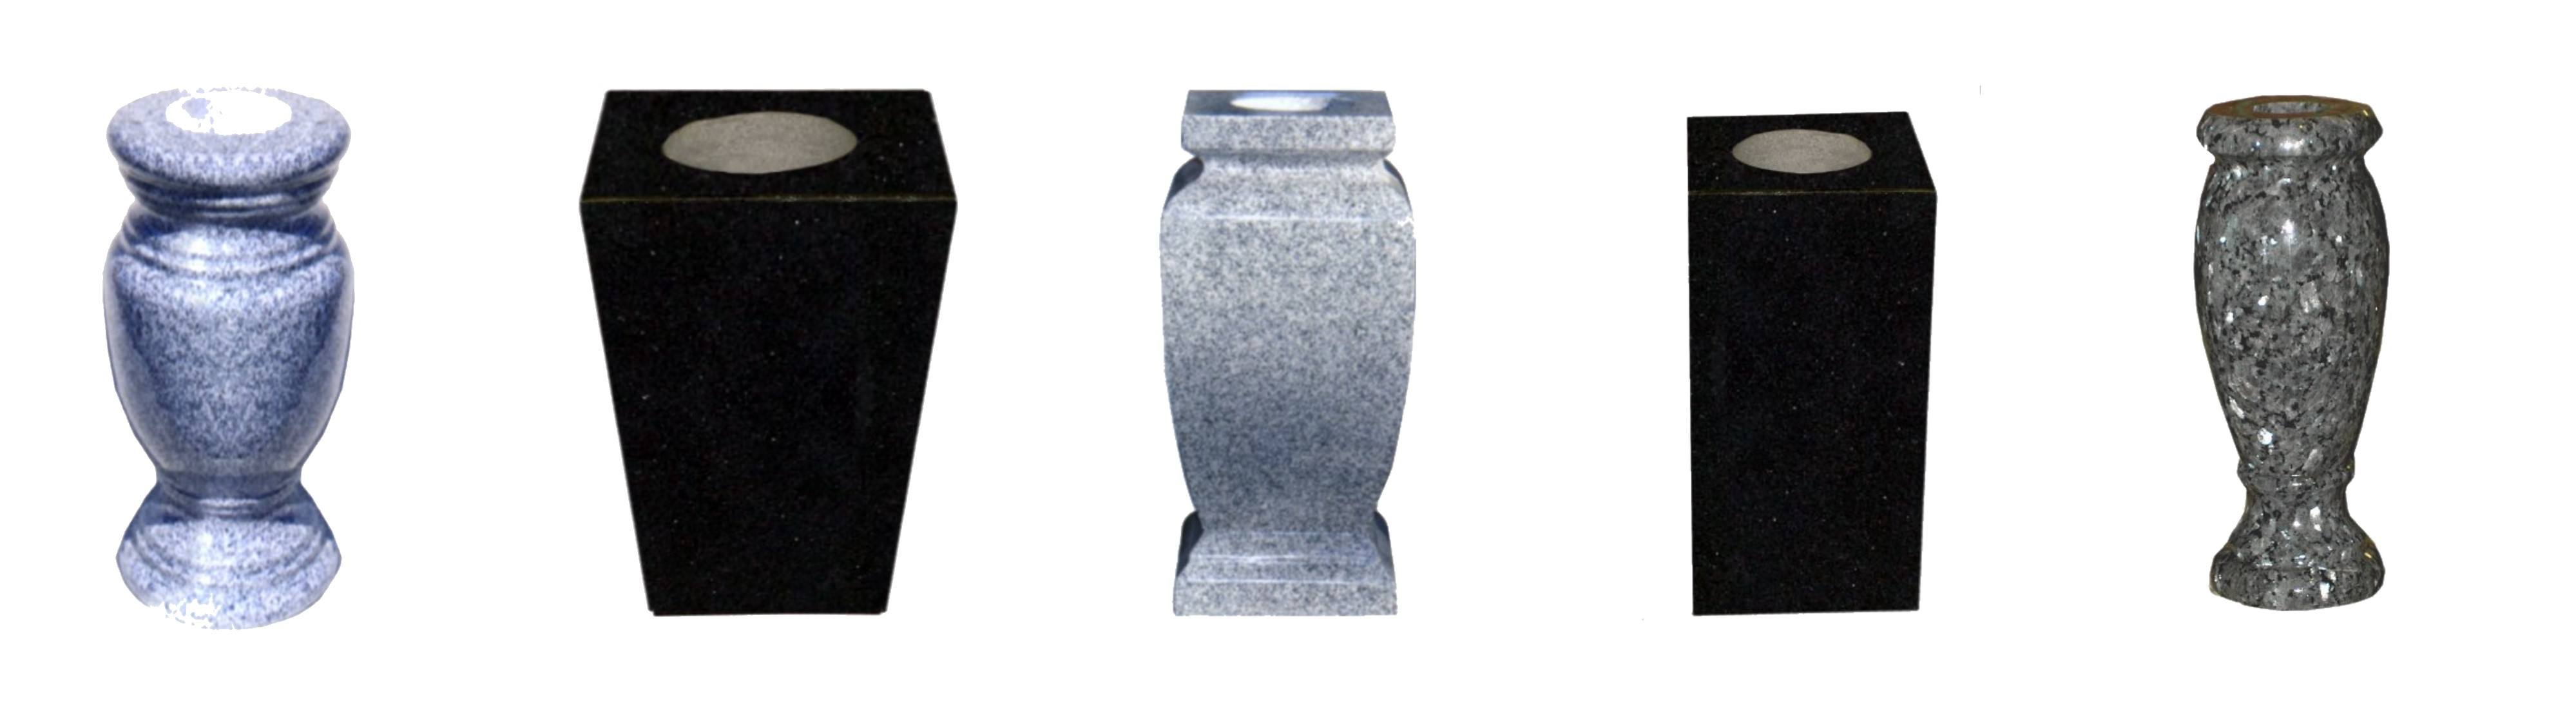 flowers may hand vases vary product cemetery item made silver flower plastic vase artificial features pin